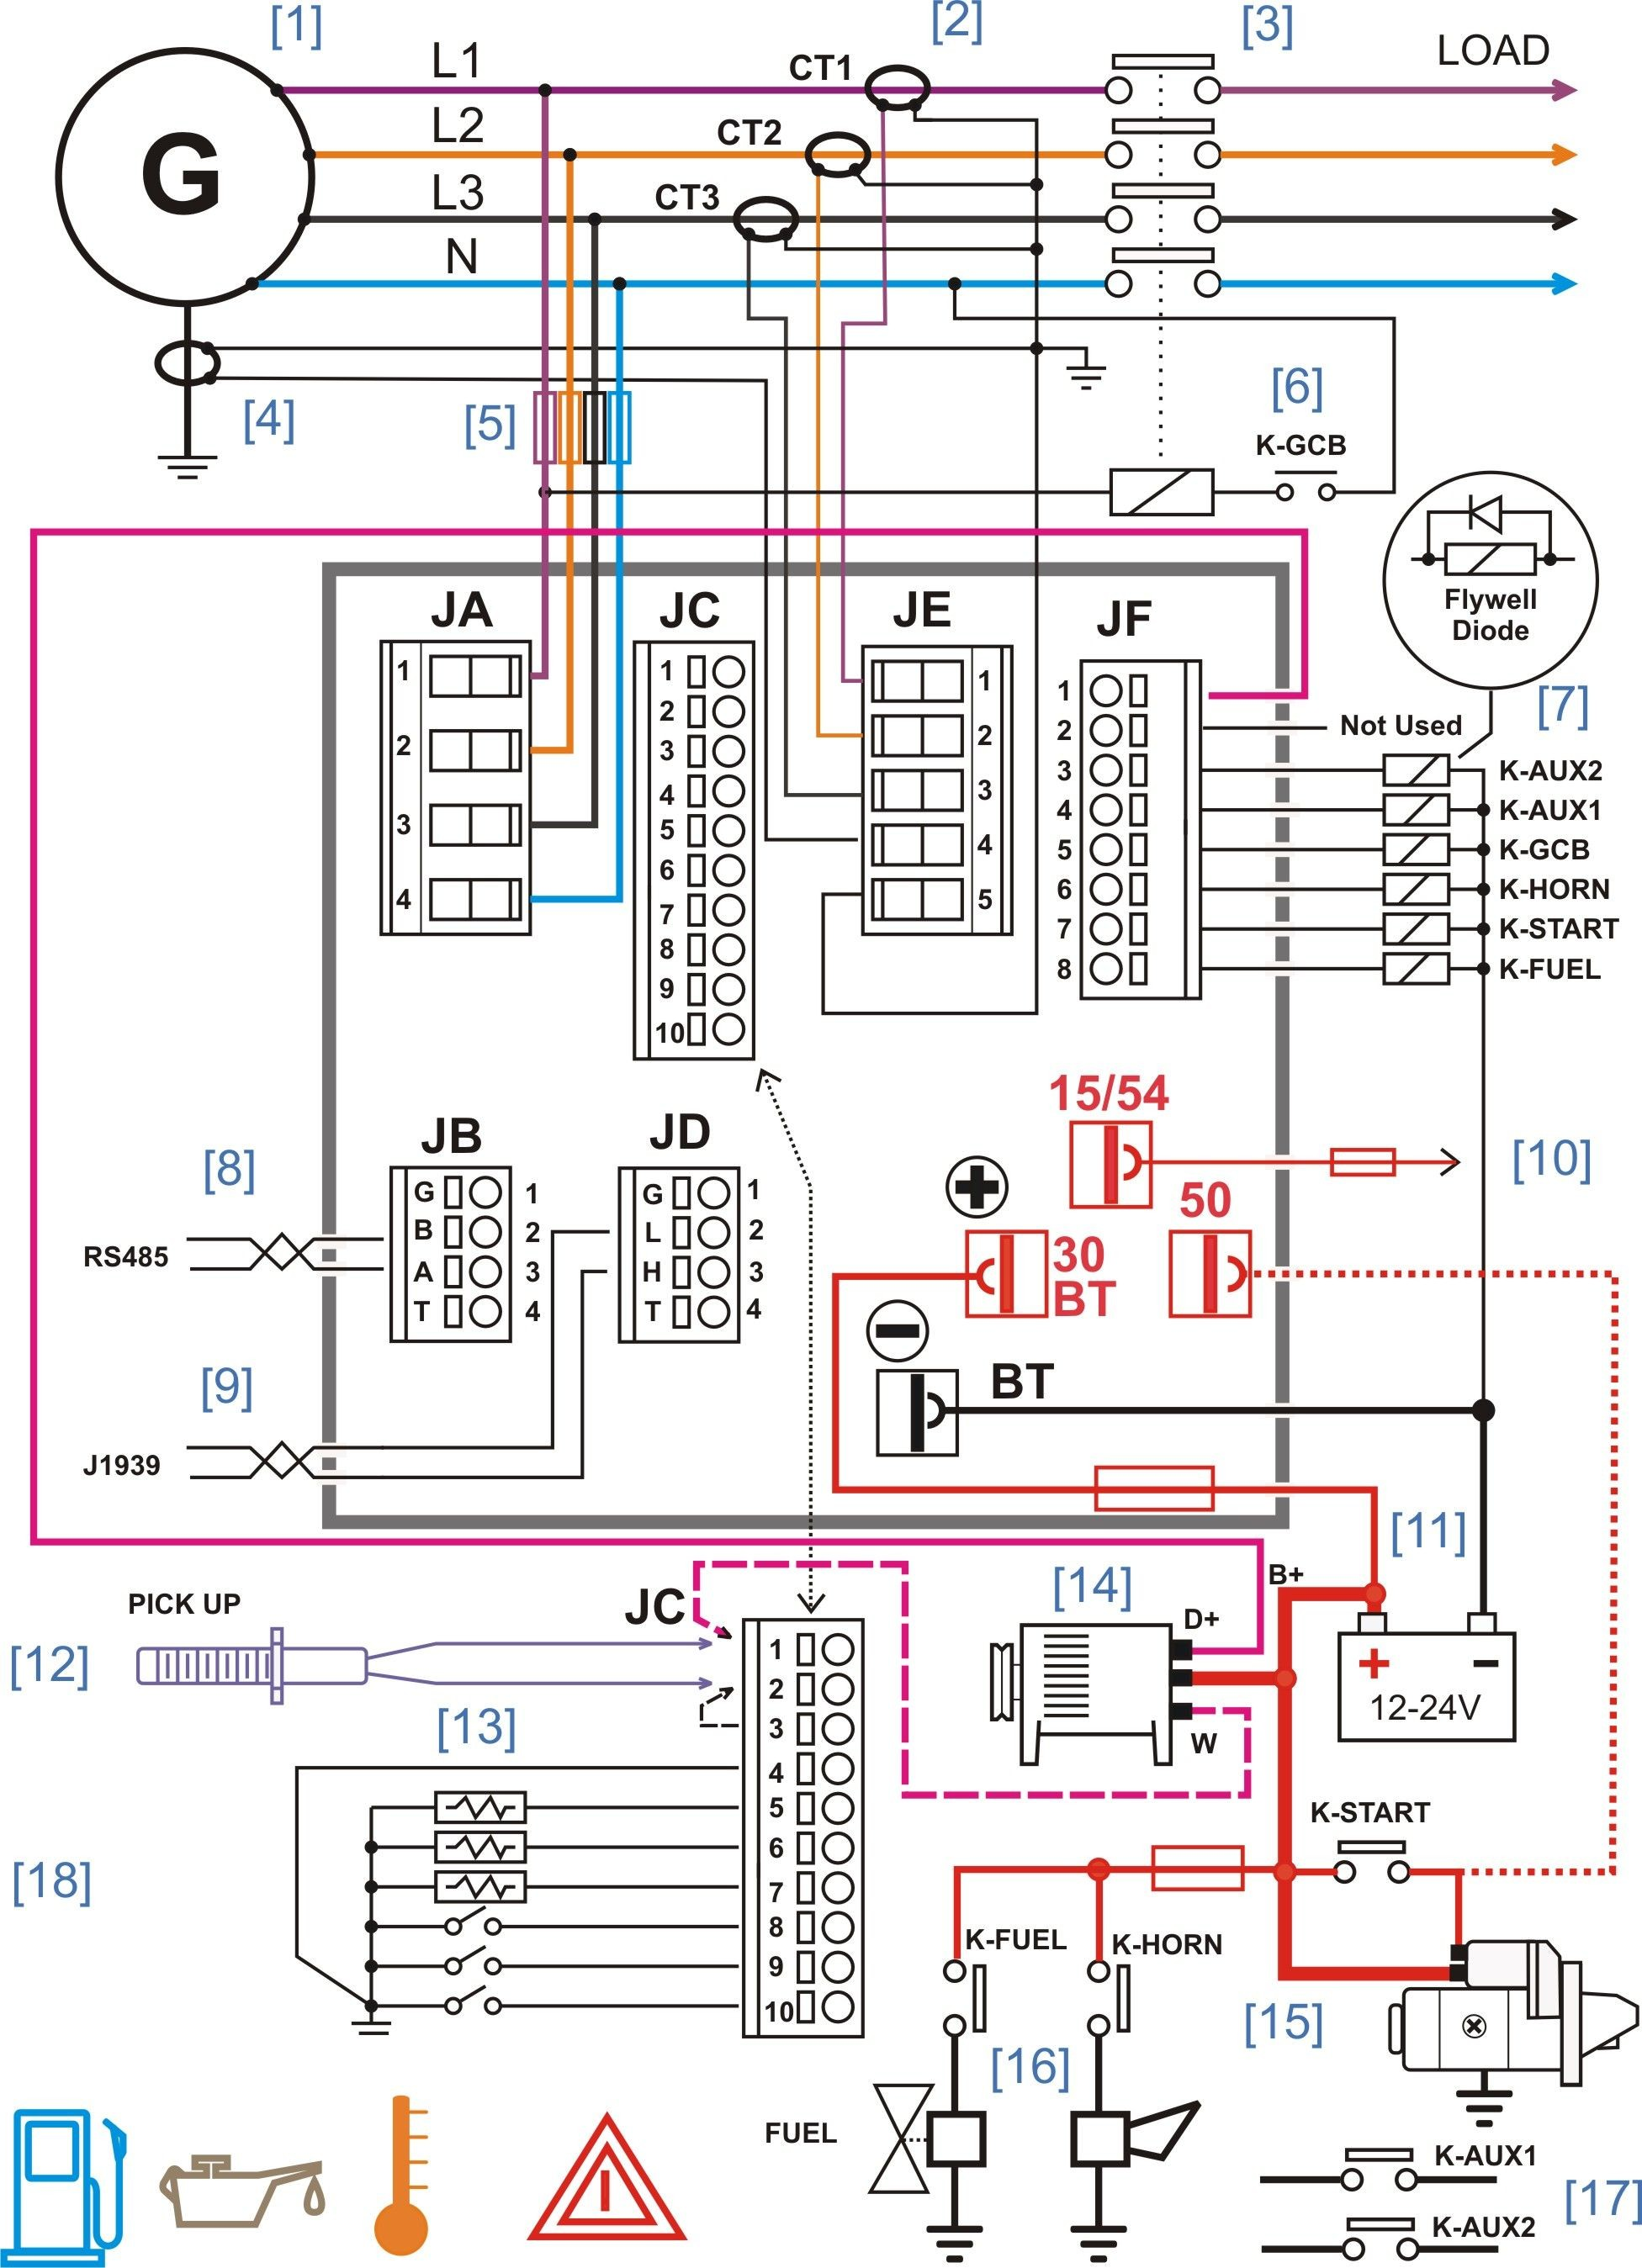 hight resolution of generator transfer switch wiring diagram diesel generator control panel wiring diagram of generator transfer switch wiring